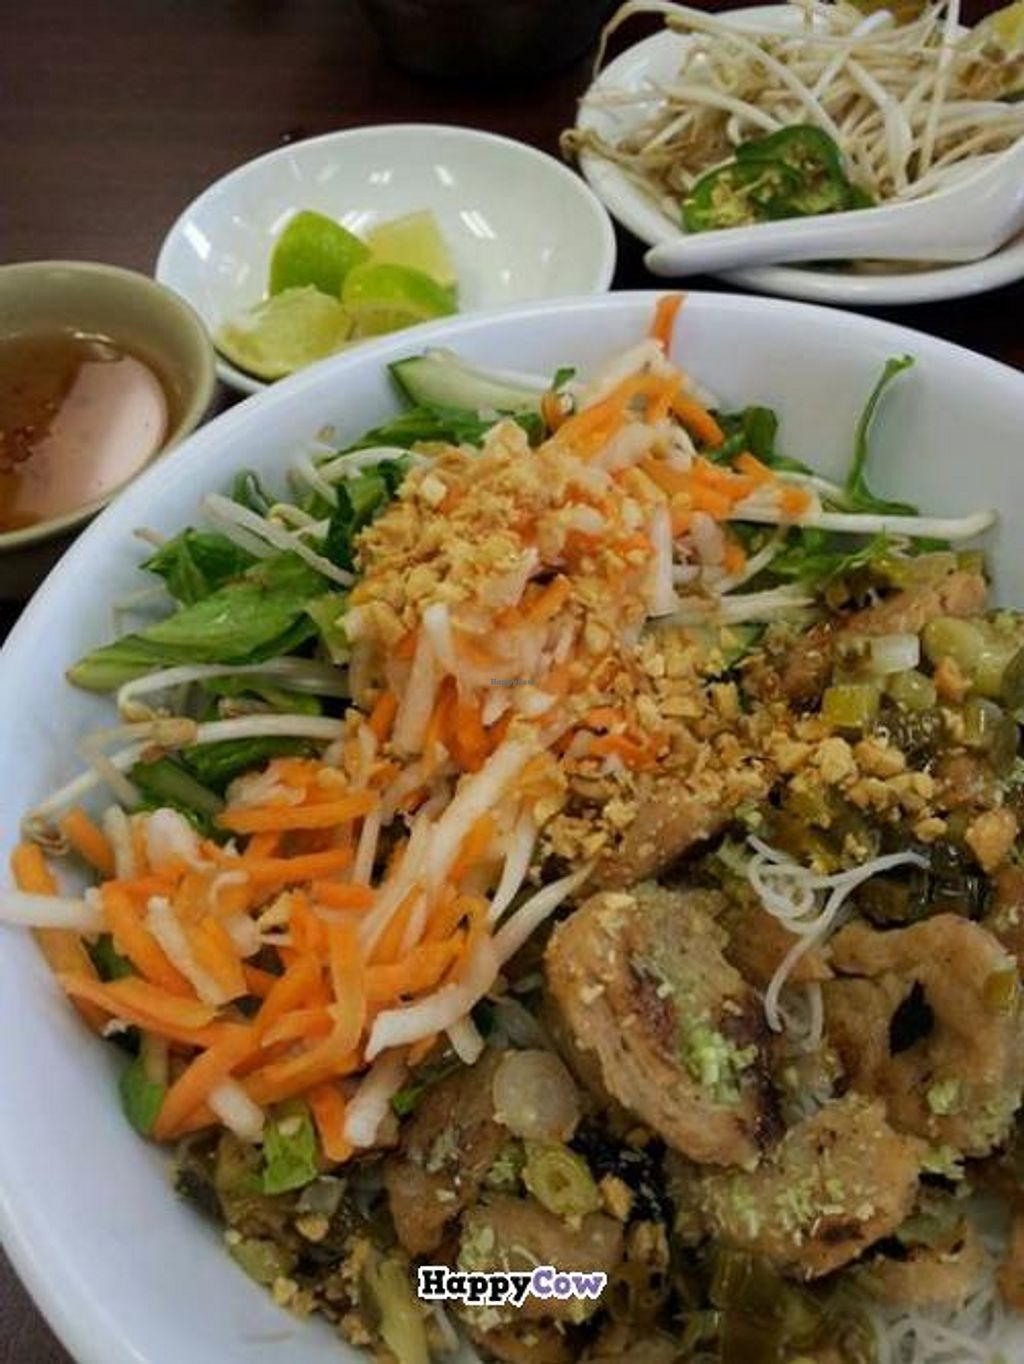 """Photo of CLOSED: Saigon Flavors  by <a href=""""/members/profile/Vegan%20Captioner"""">Vegan Captioner</a> <br/>One of the many vegan options here.  It's the rice noodle bowl with vegan chick'n.  It comes with a spicy sauce on the side, and they also offer peanut sauce or soy sauce if preferred.  This is so delicious and abundant!   <br/> July 25, 2013  - <a href='/contact/abuse/image/40183/52182'>Report</a>"""